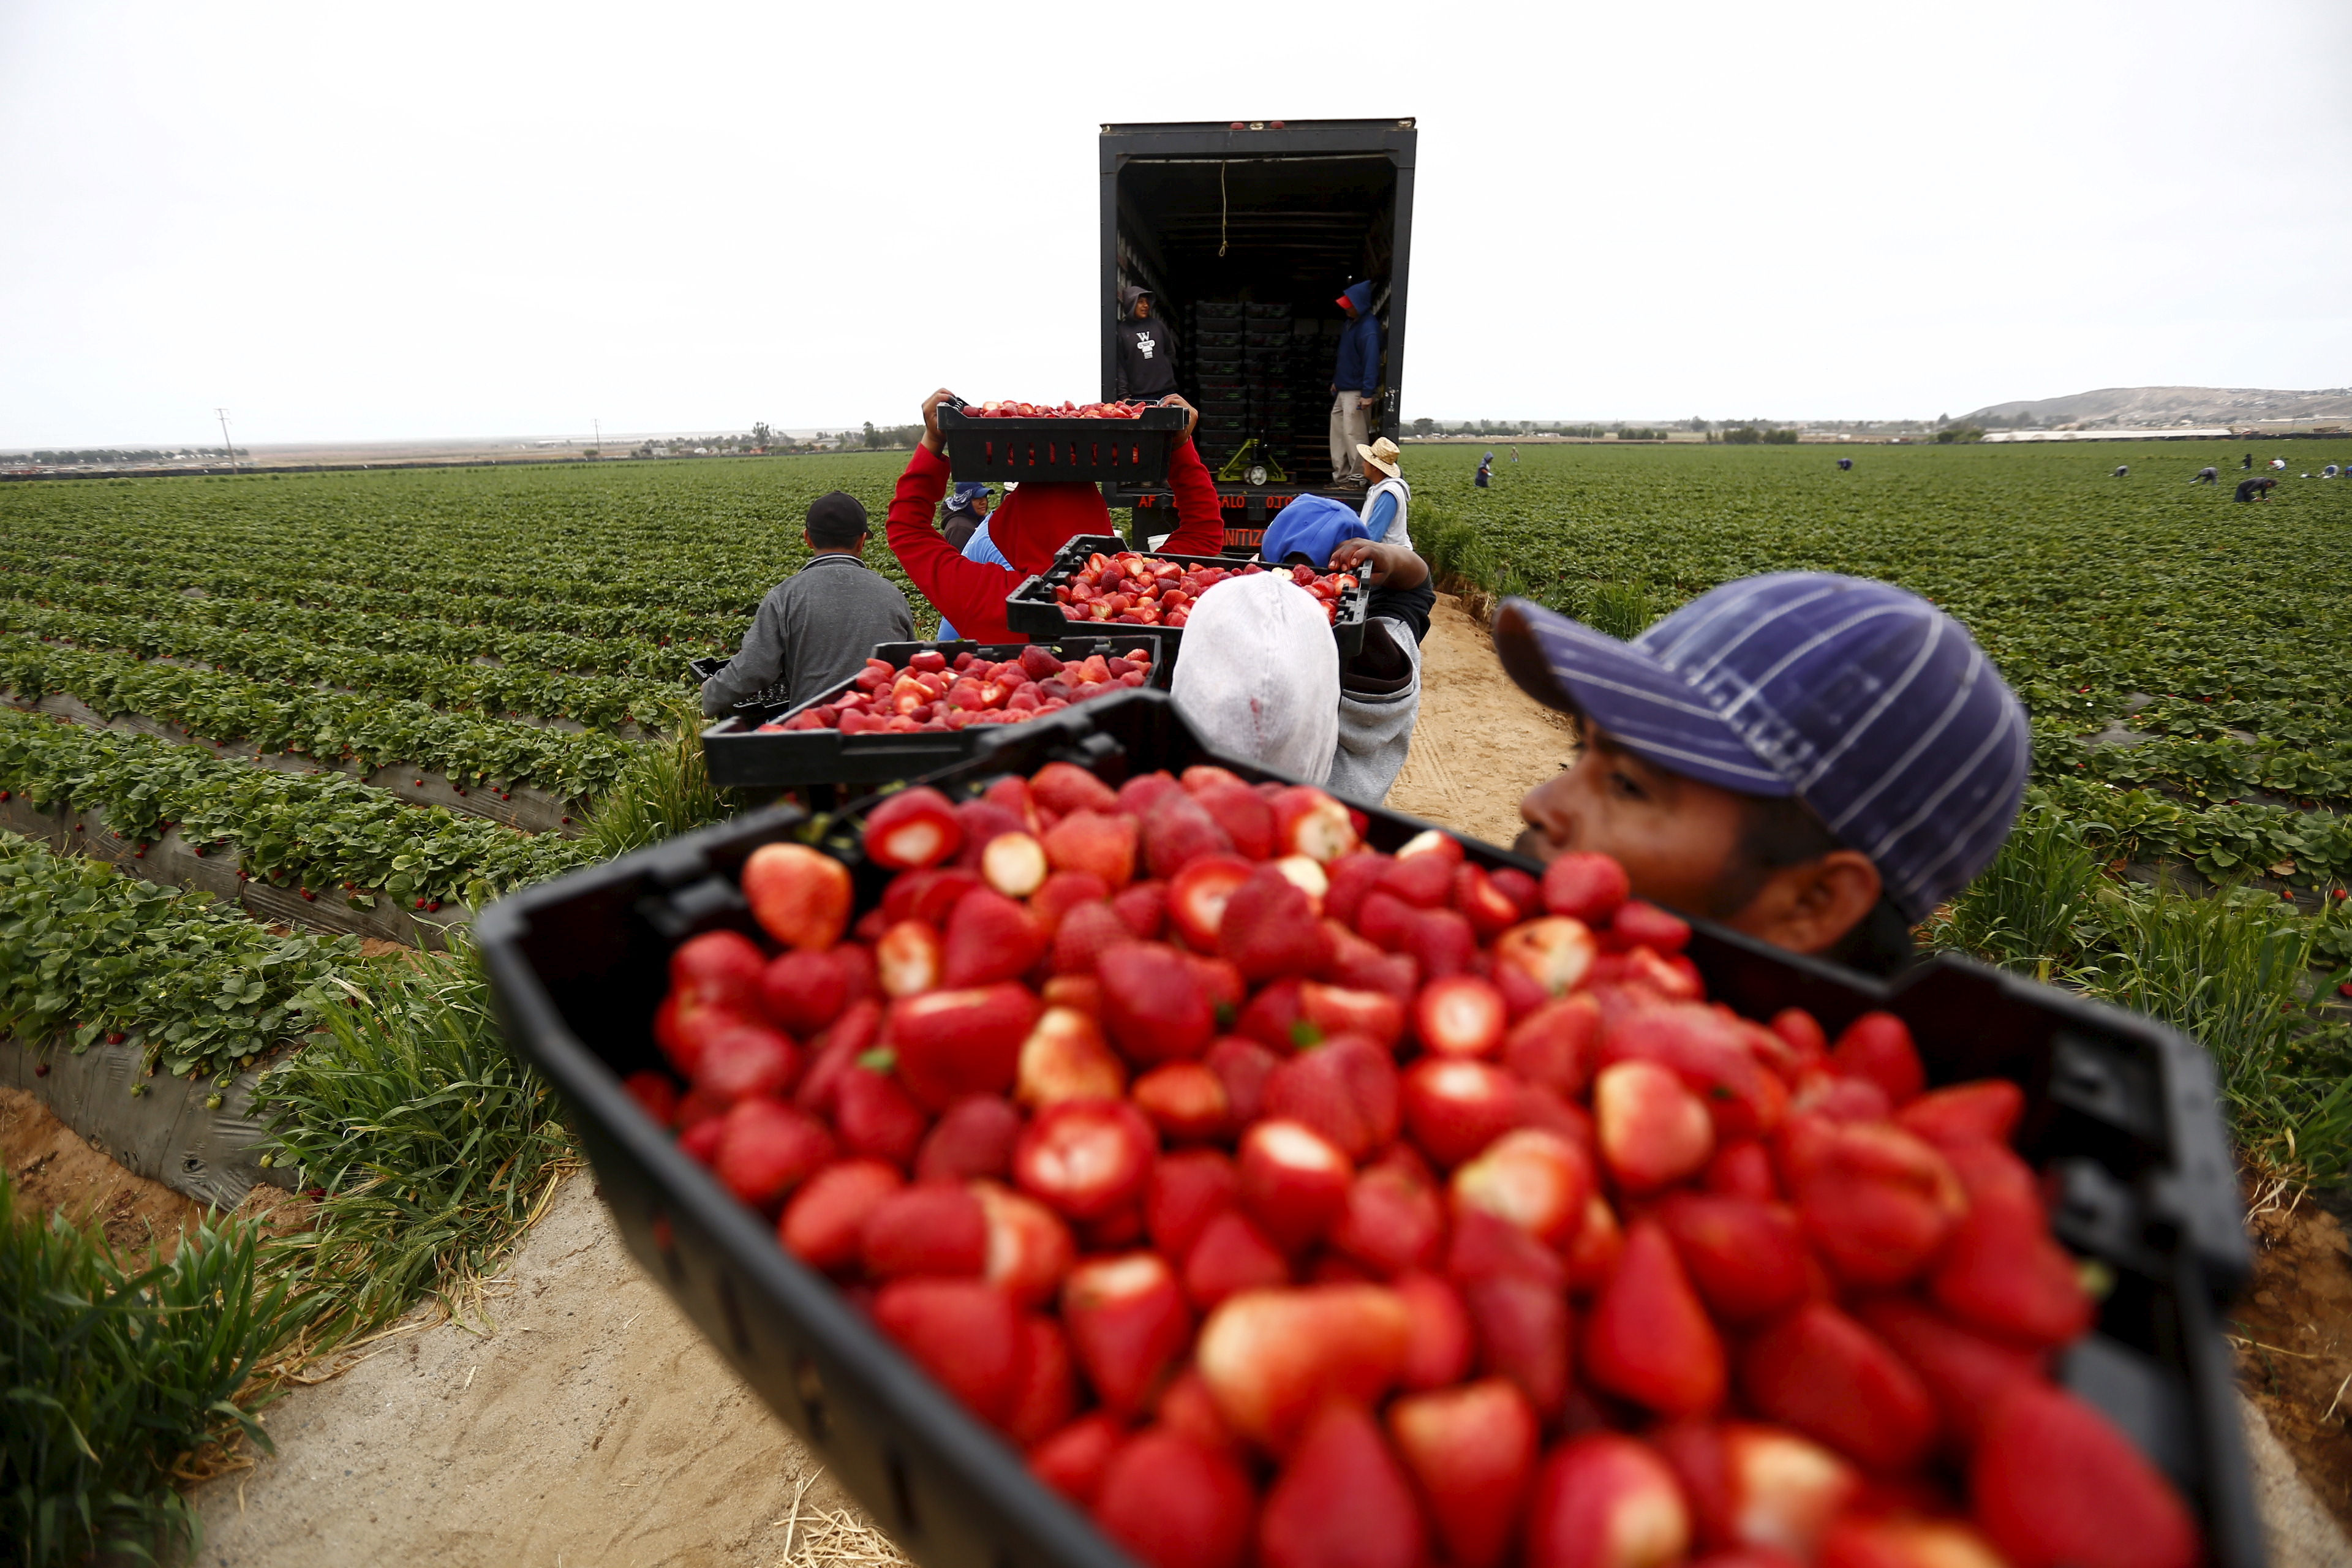 A man holds up a box of berries in a field, waiting in a queue to load them onto a truck.